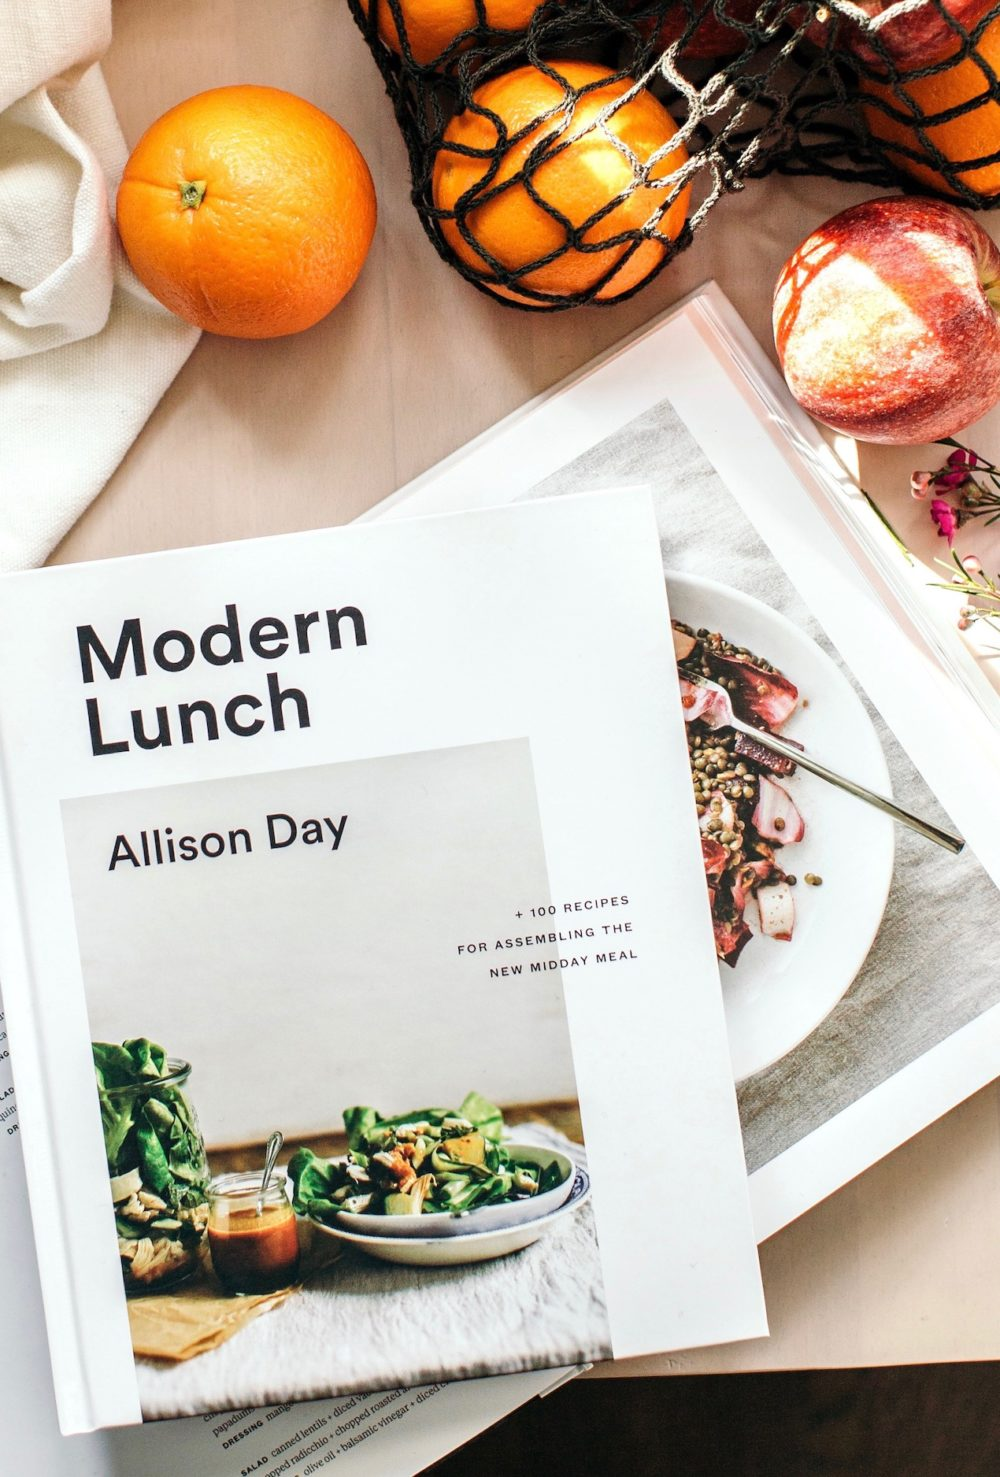 Modern Lunch cookbook by Allison Day